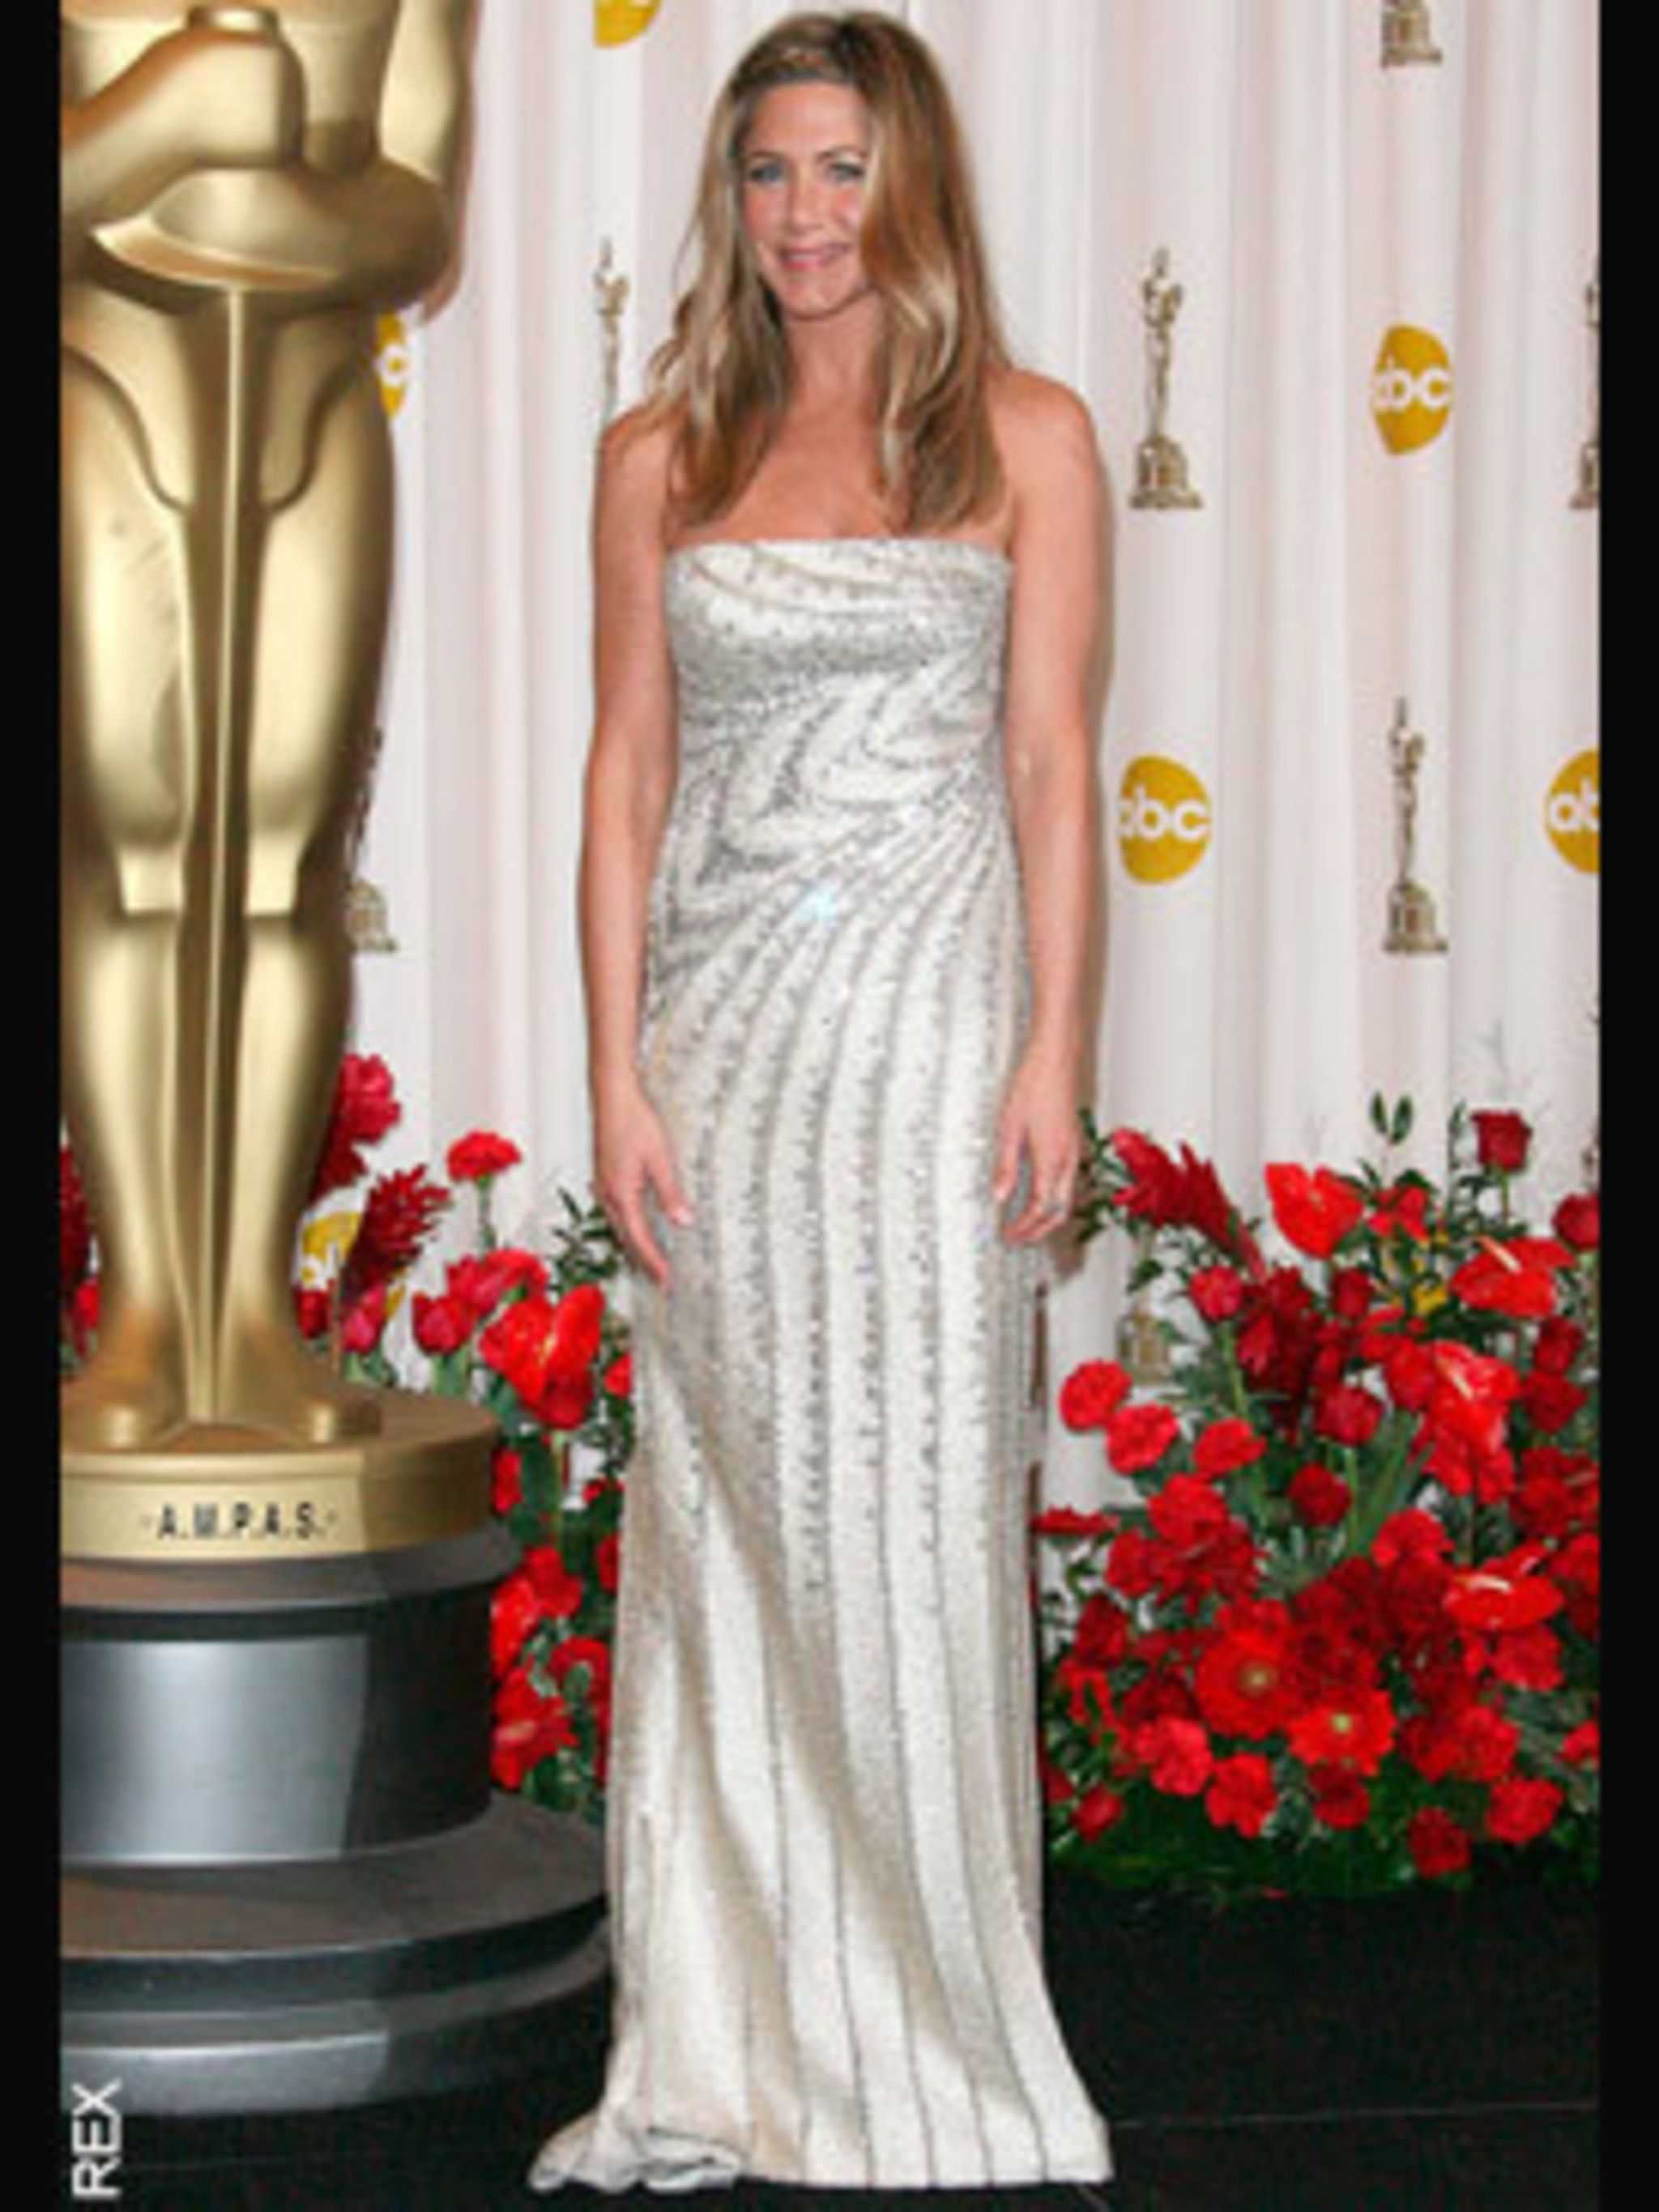 <p>Jennifer Aniston in Valentino Couture, Bvlgari jewellery and Jimmy Choo shoes</p>